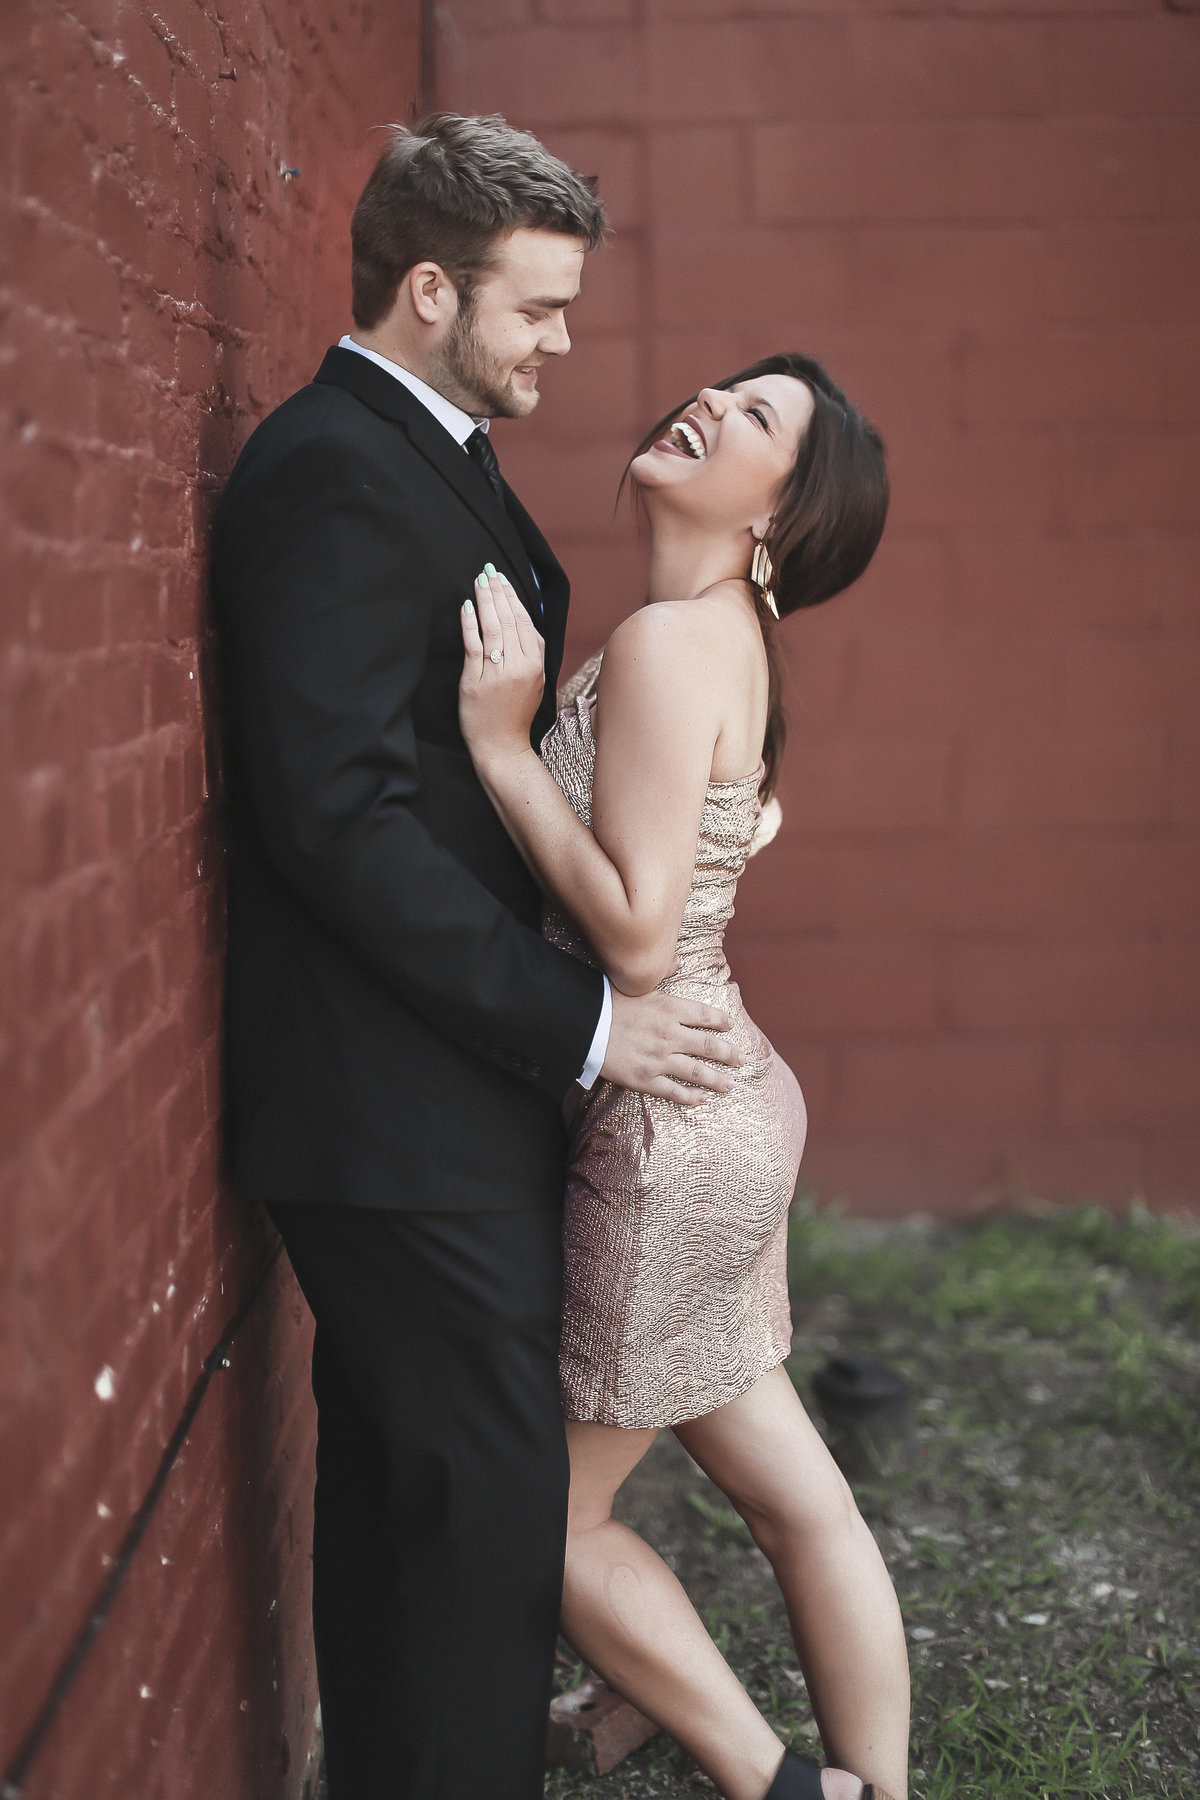 engagement-ideas-photographer-nw-arkansas-25261